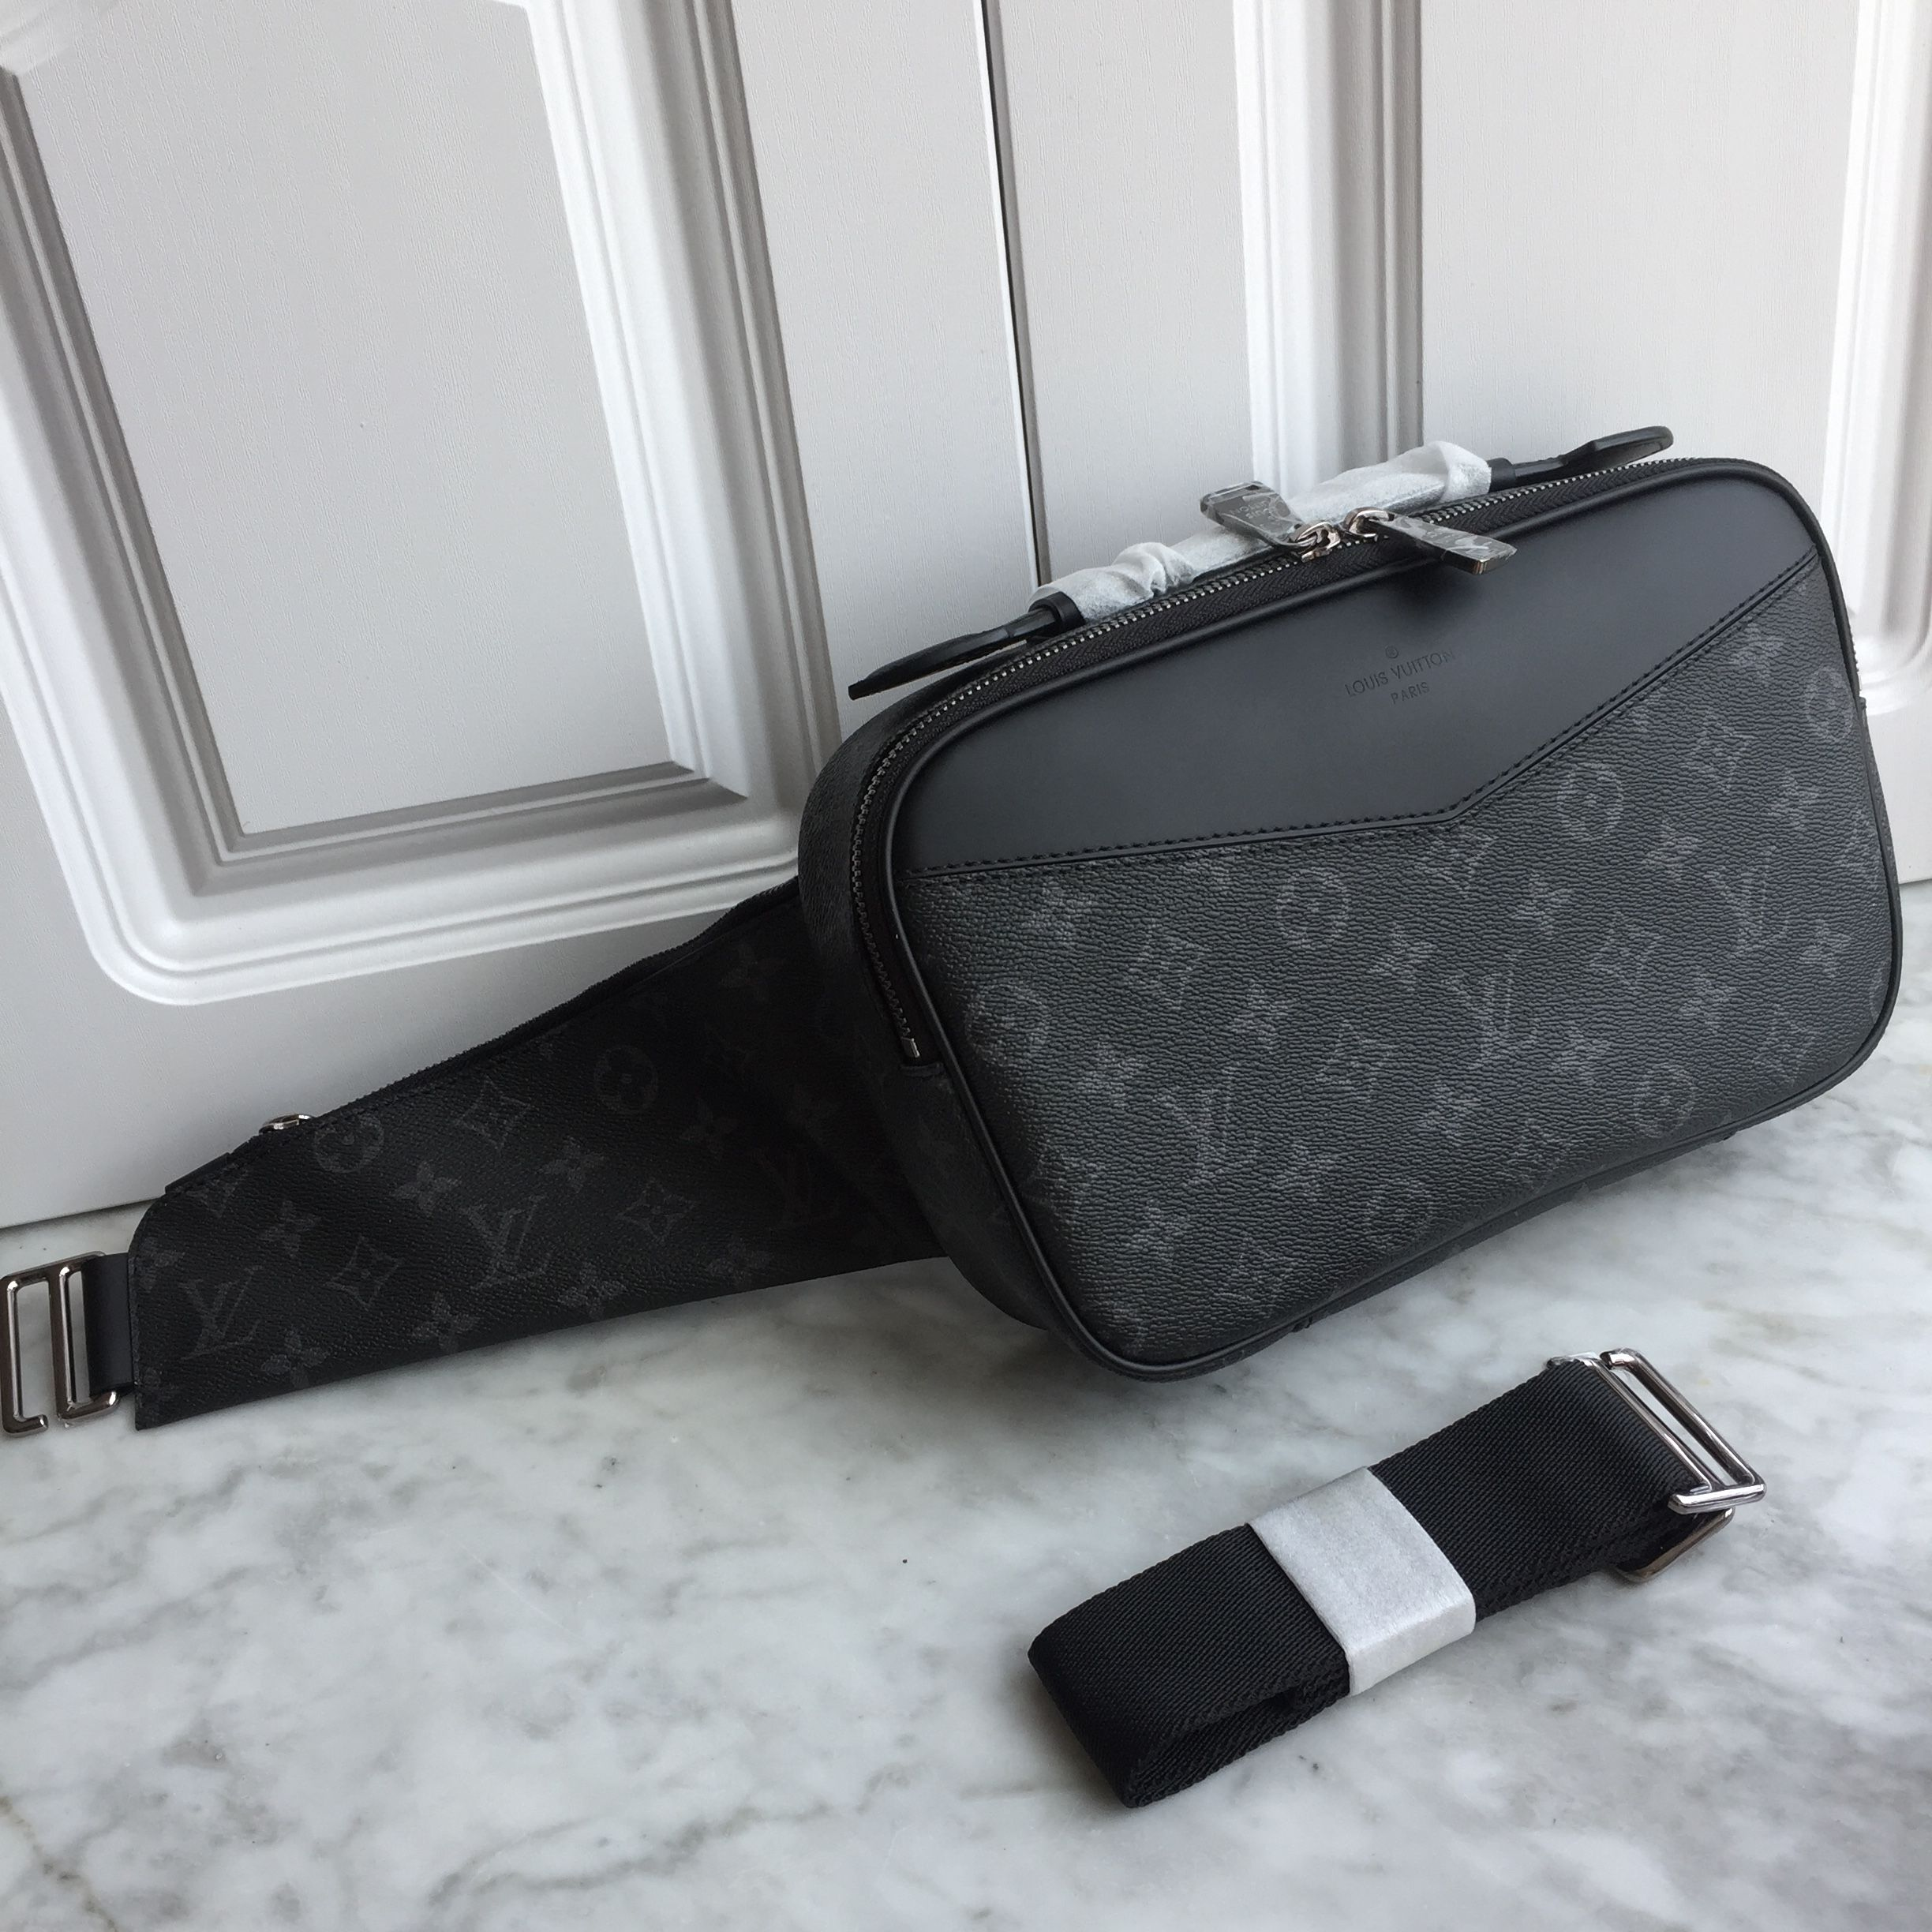 c621b4eb5e9 Louis Vuitton lv man shoulder bag original leather Herentassen, Heuptasje,  Supreme, Straatkleding,